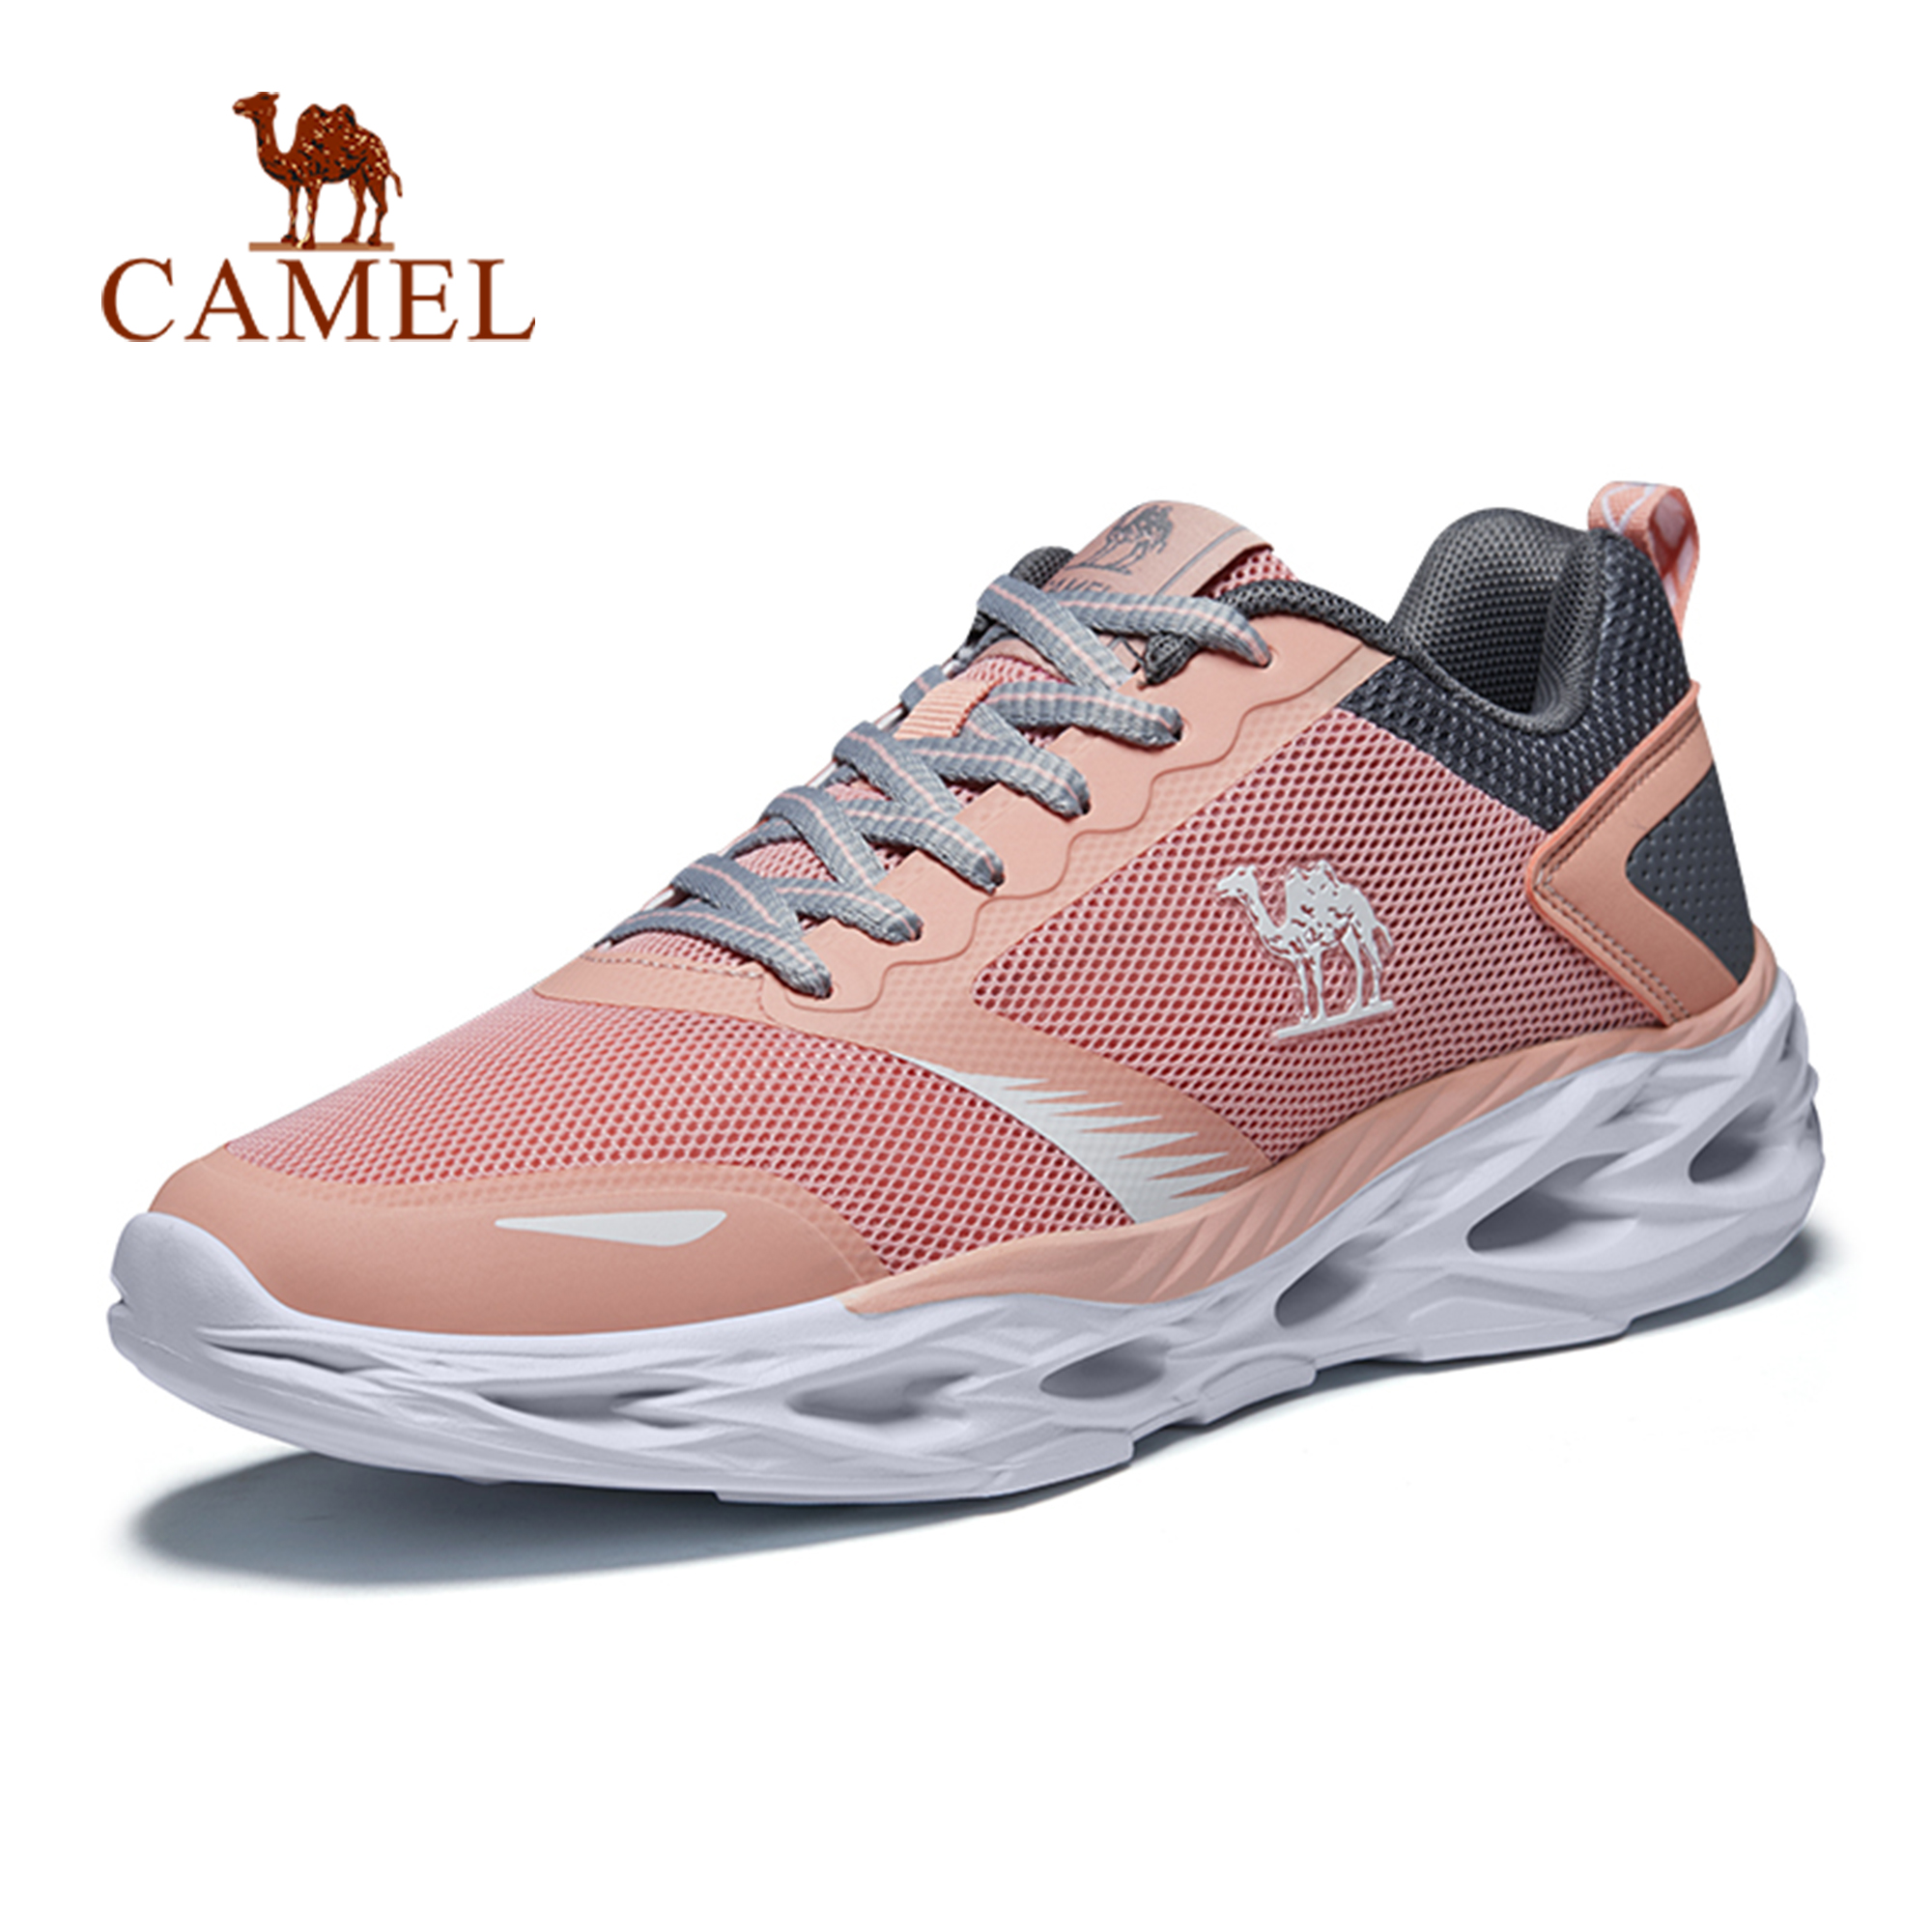 CAMEL Men Women Running Shoes Shock Absorption Cushion Breathable Lightweight Comfortable Footwear Outdoor Sports Sneakers